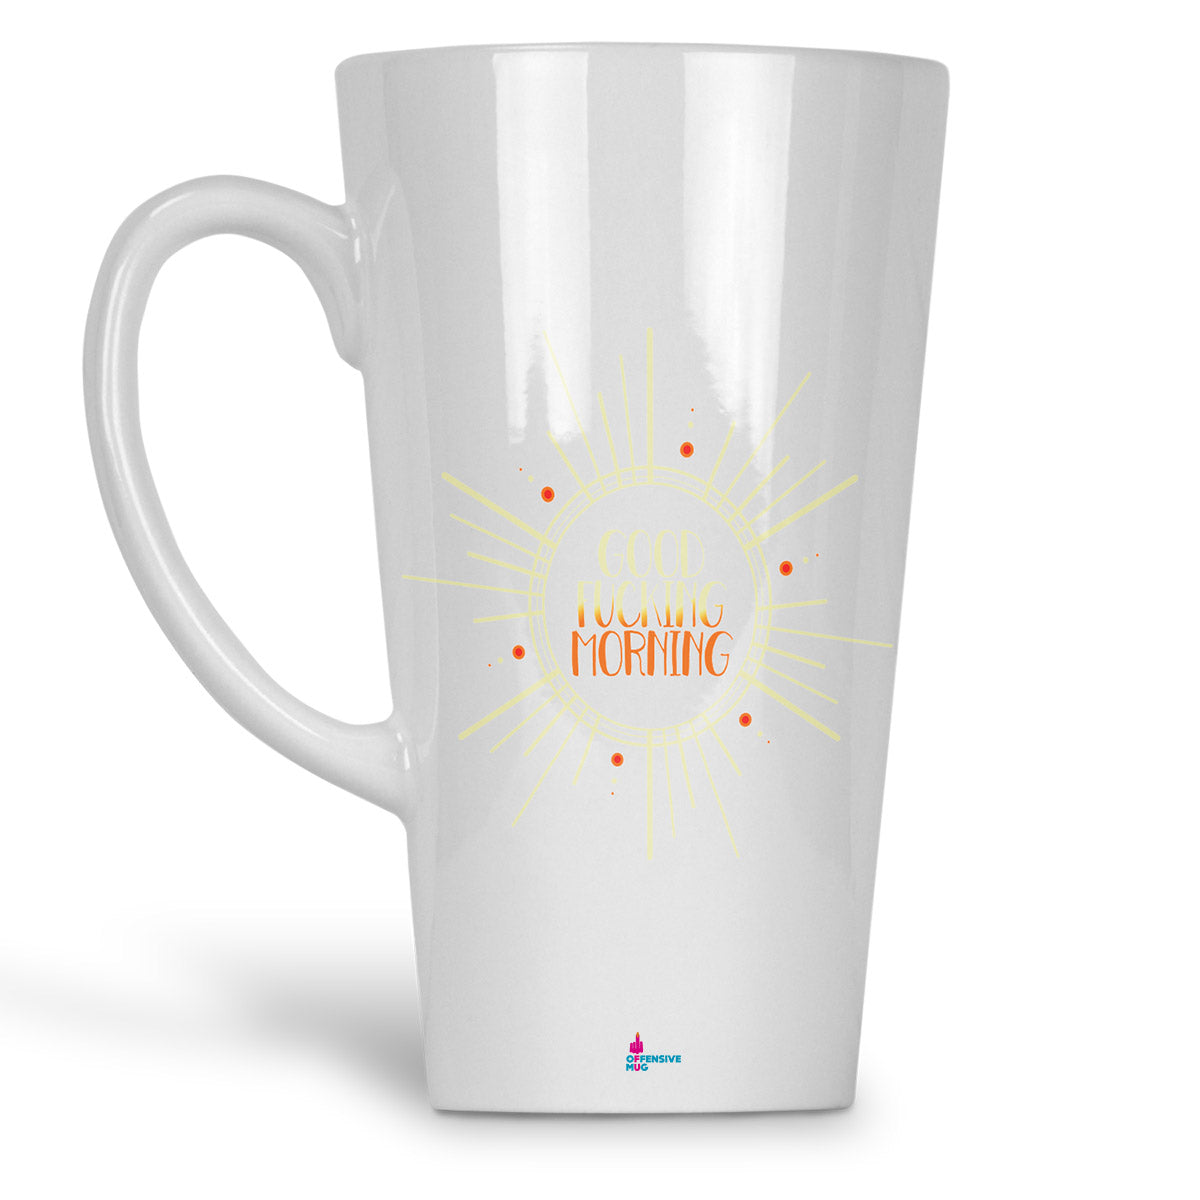 Cindy Latte Mug - Offensive Mug